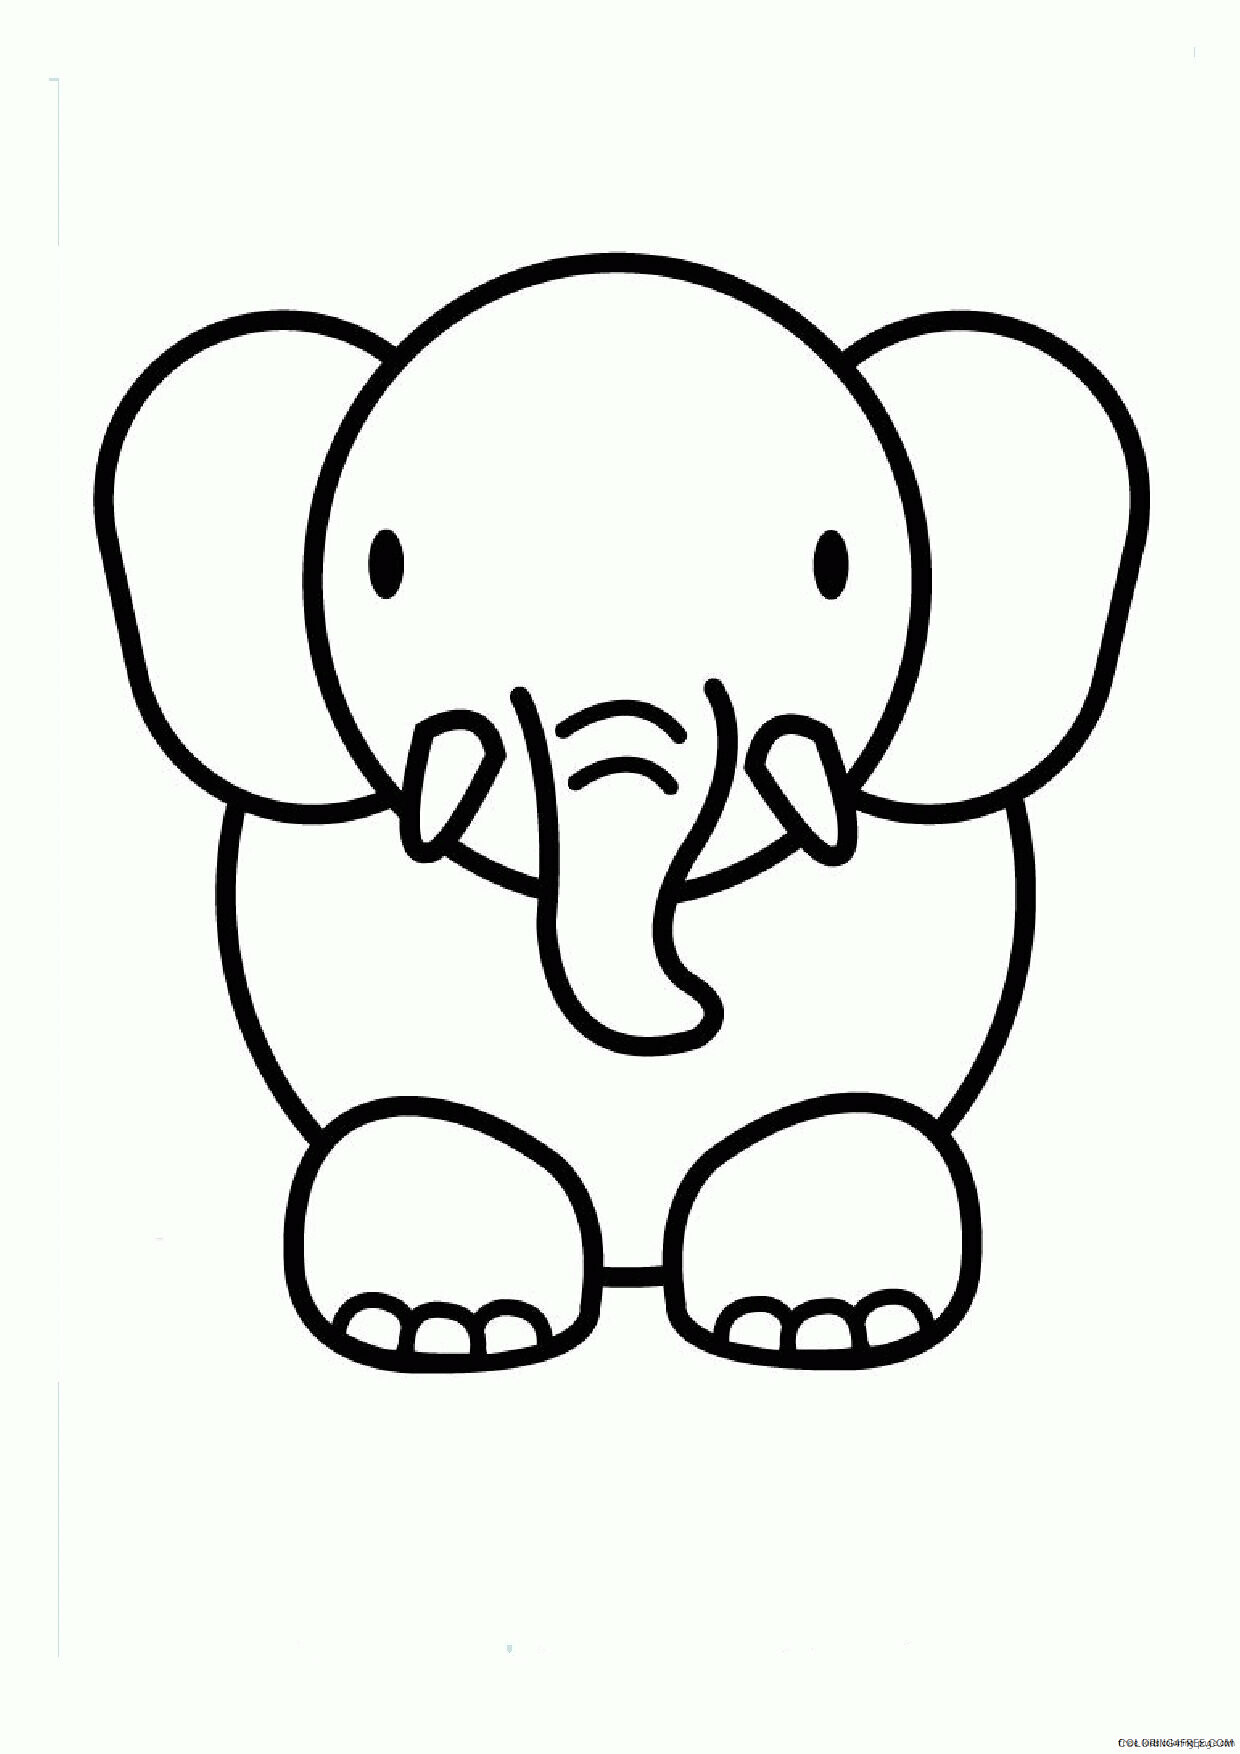 Az Coloring Pages of Animals Printable Sheets Acumen Cute Of 2021 a 4440 Coloring4free